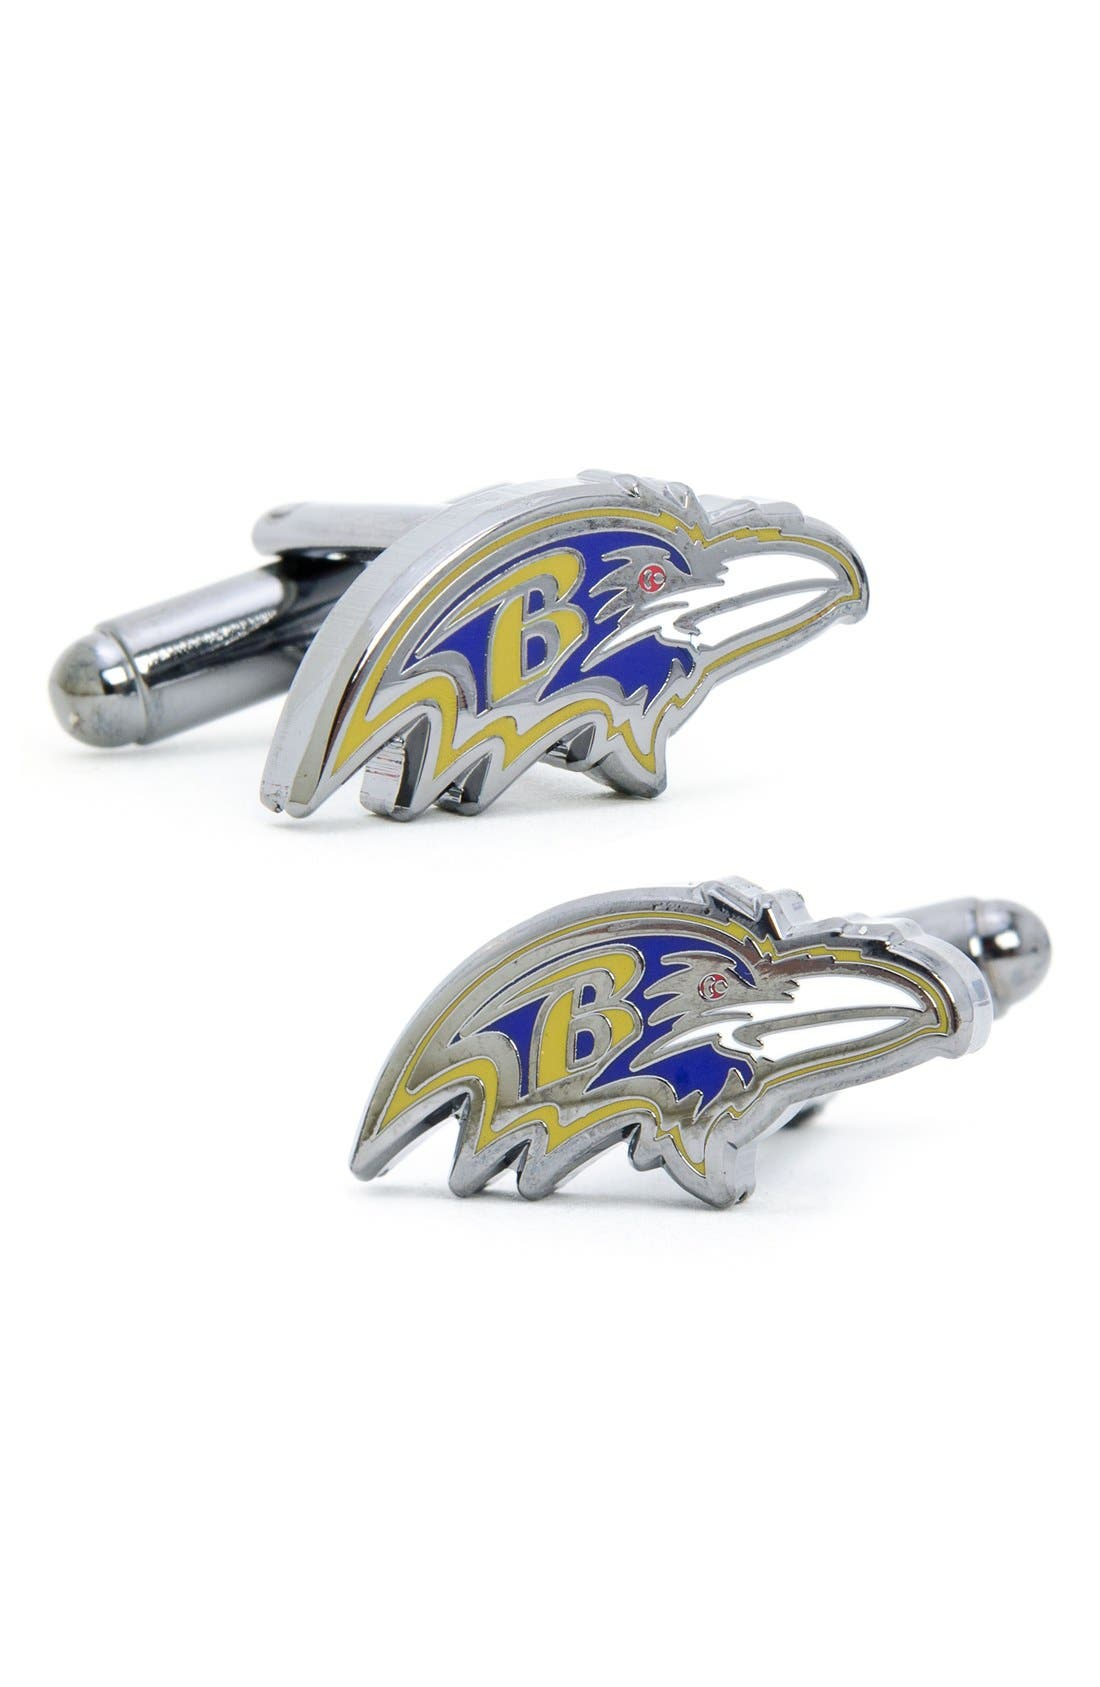 'Baltimore Ravens' Cuff Links,                         Main,                         color,